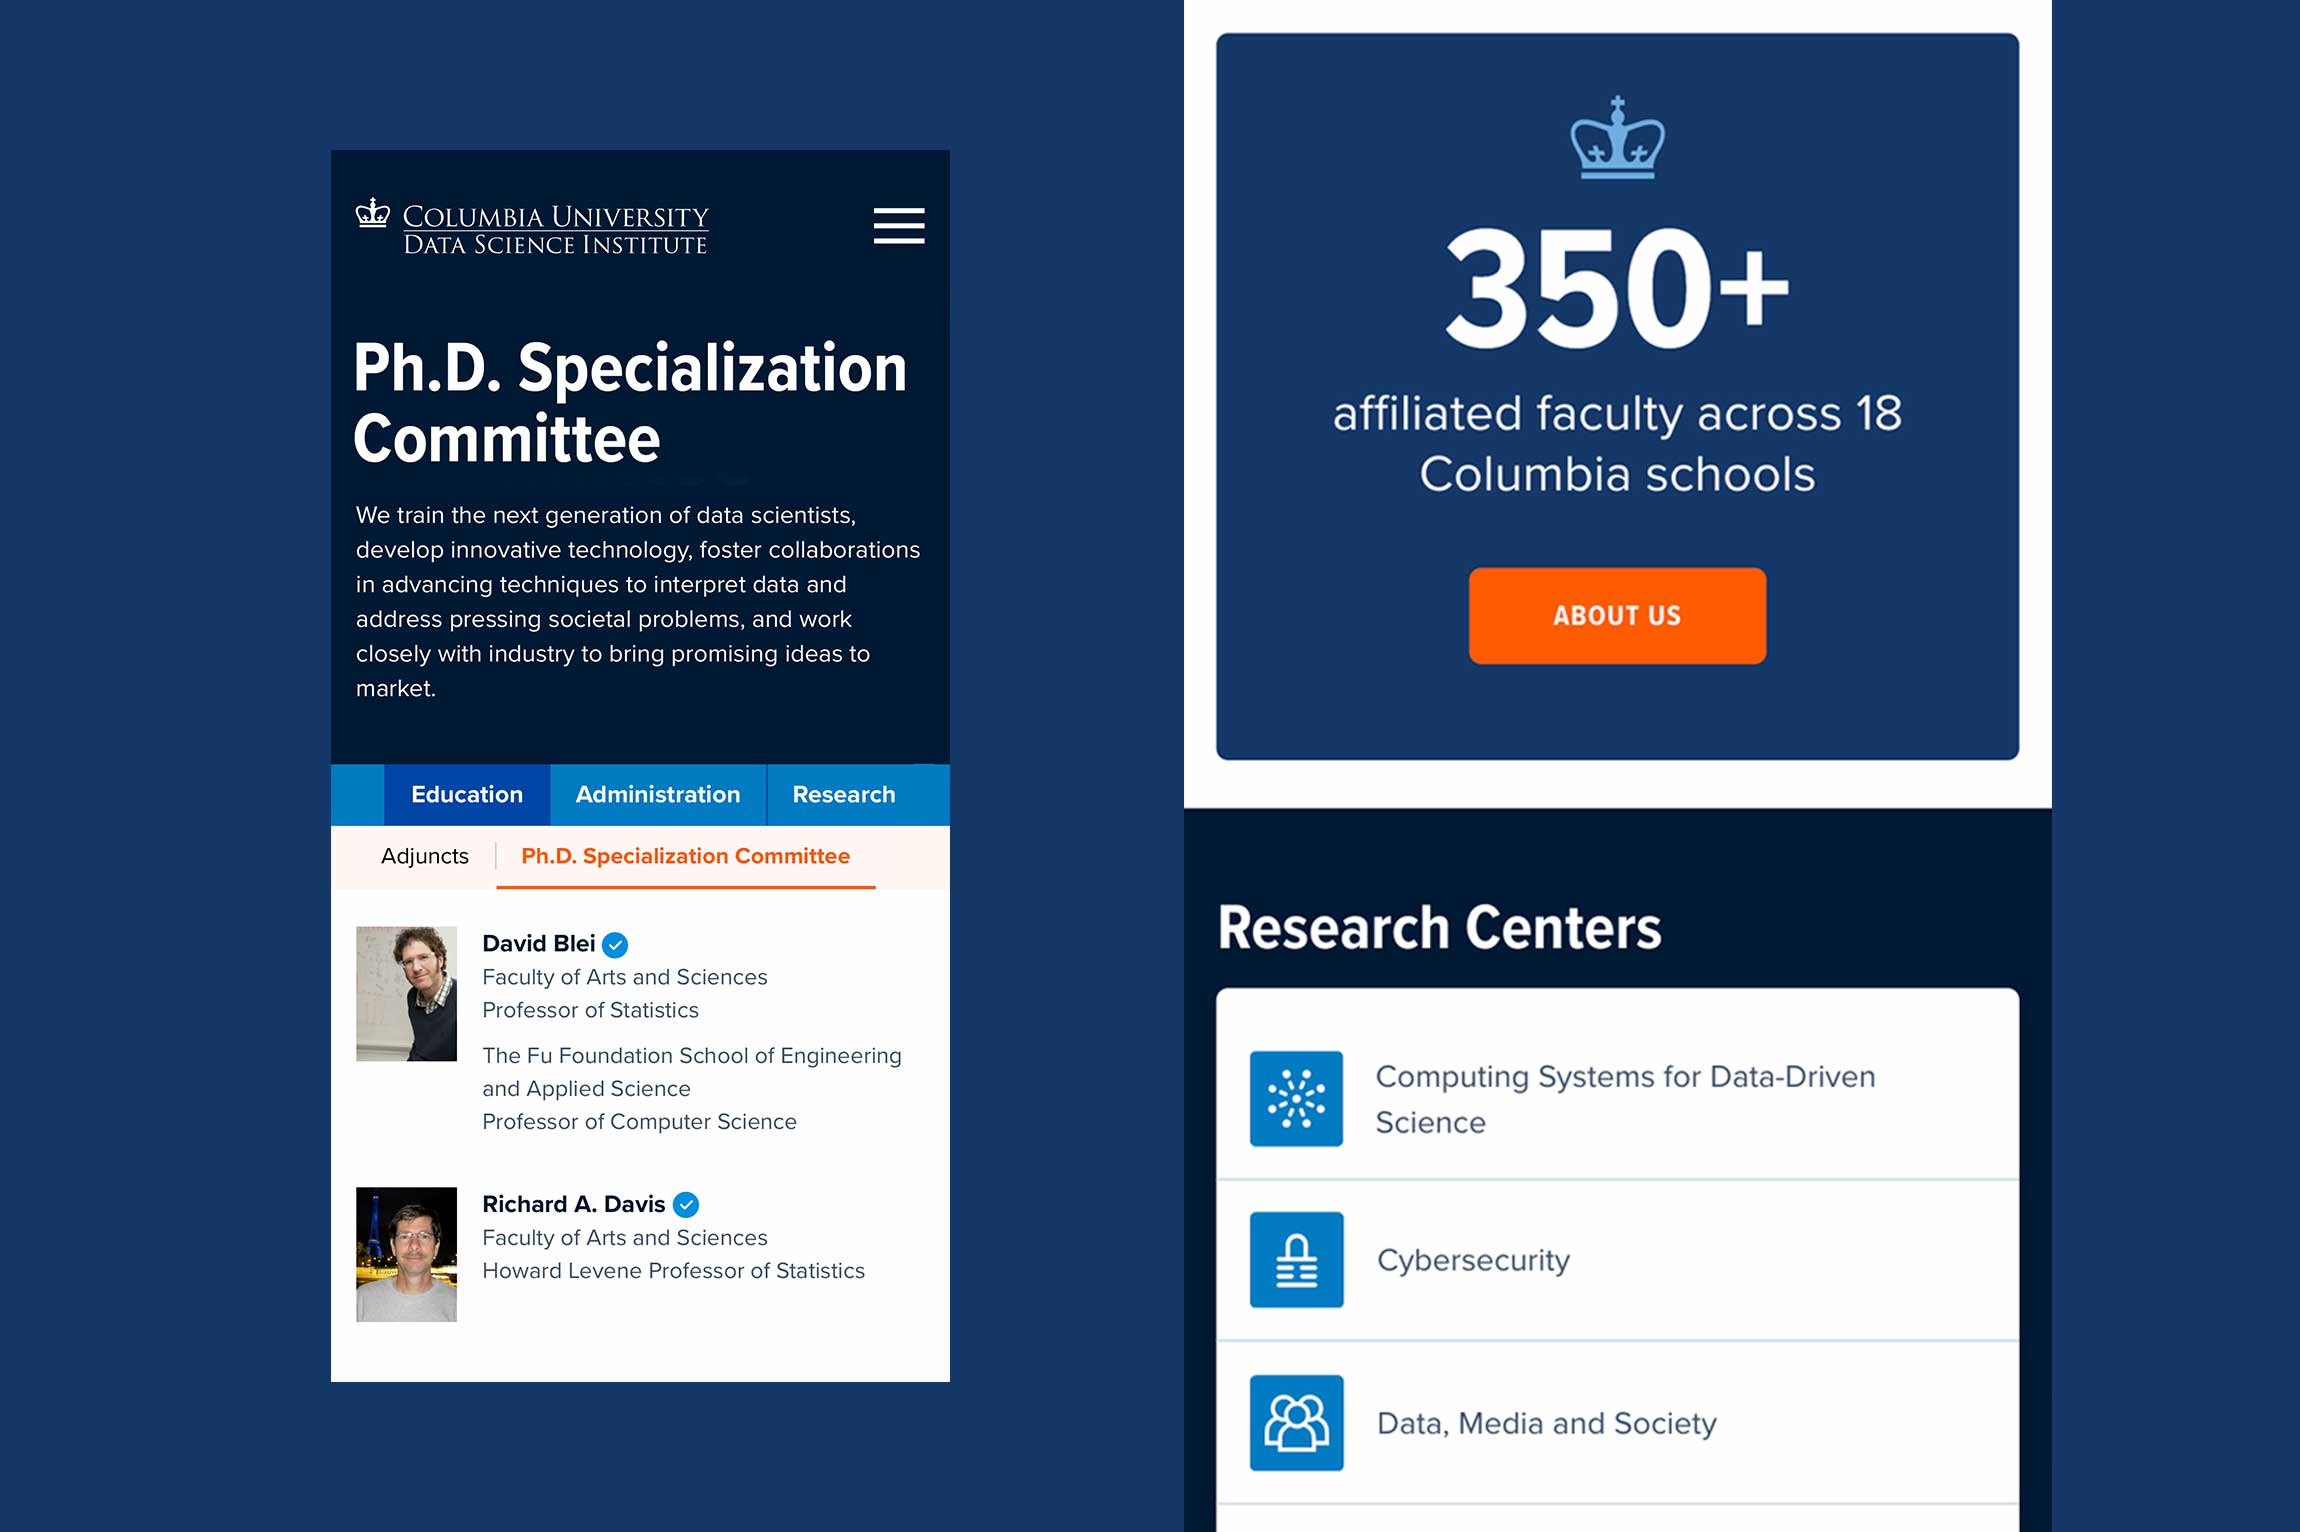 Columbia-Data-Science-Institute-website-design-3